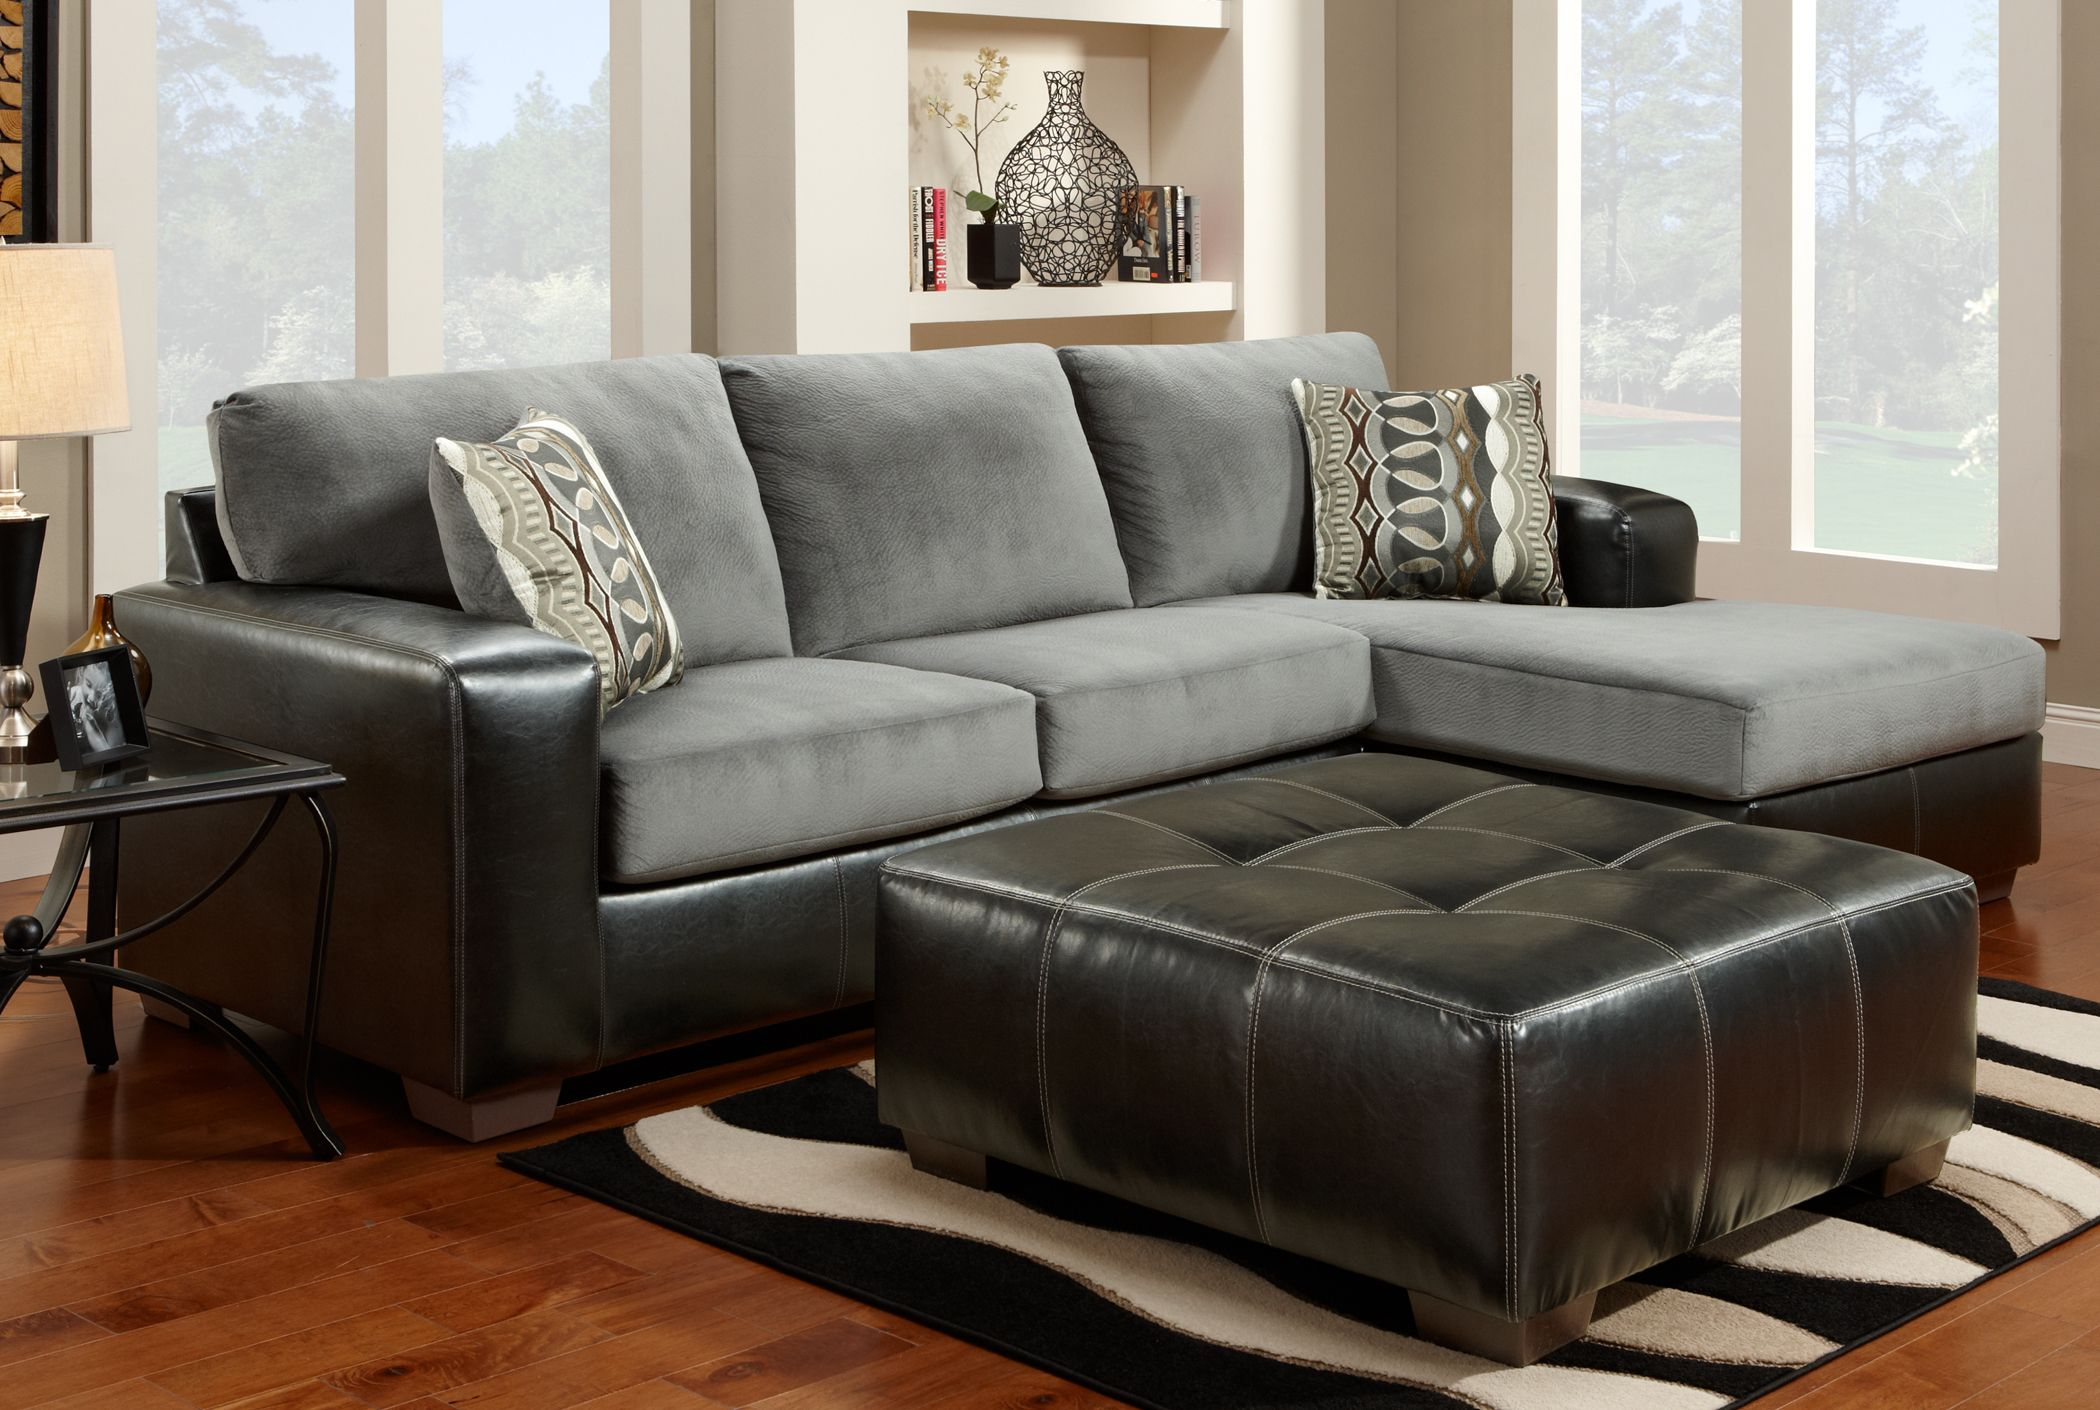 Cumulus Black Gray Two Toned Sectional Sofa Chaise And